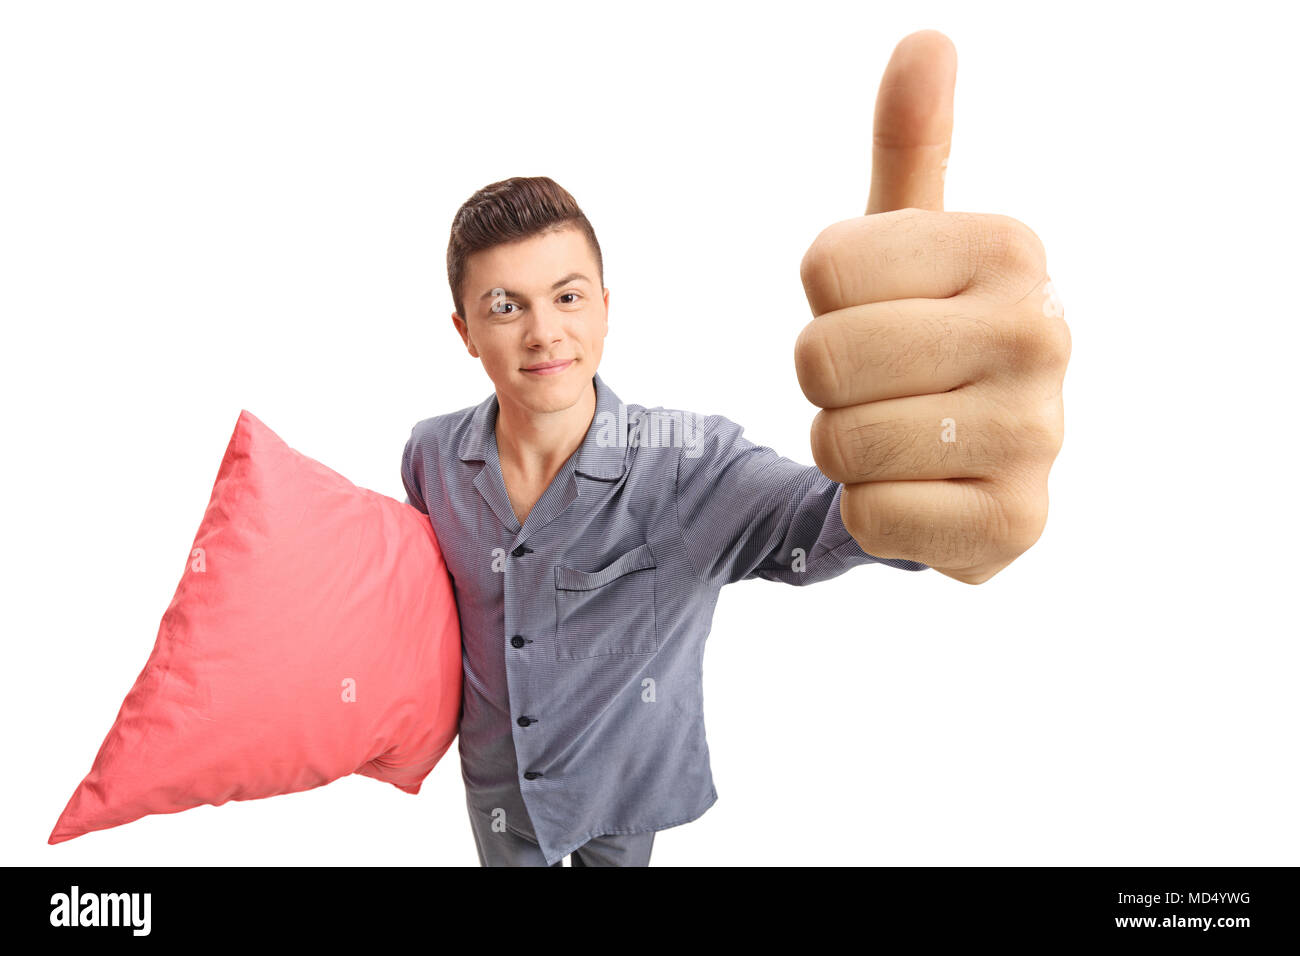 Teenage boy in pajamas holding a pillow and making a thumb up gesture isolated on white background - Stock Image